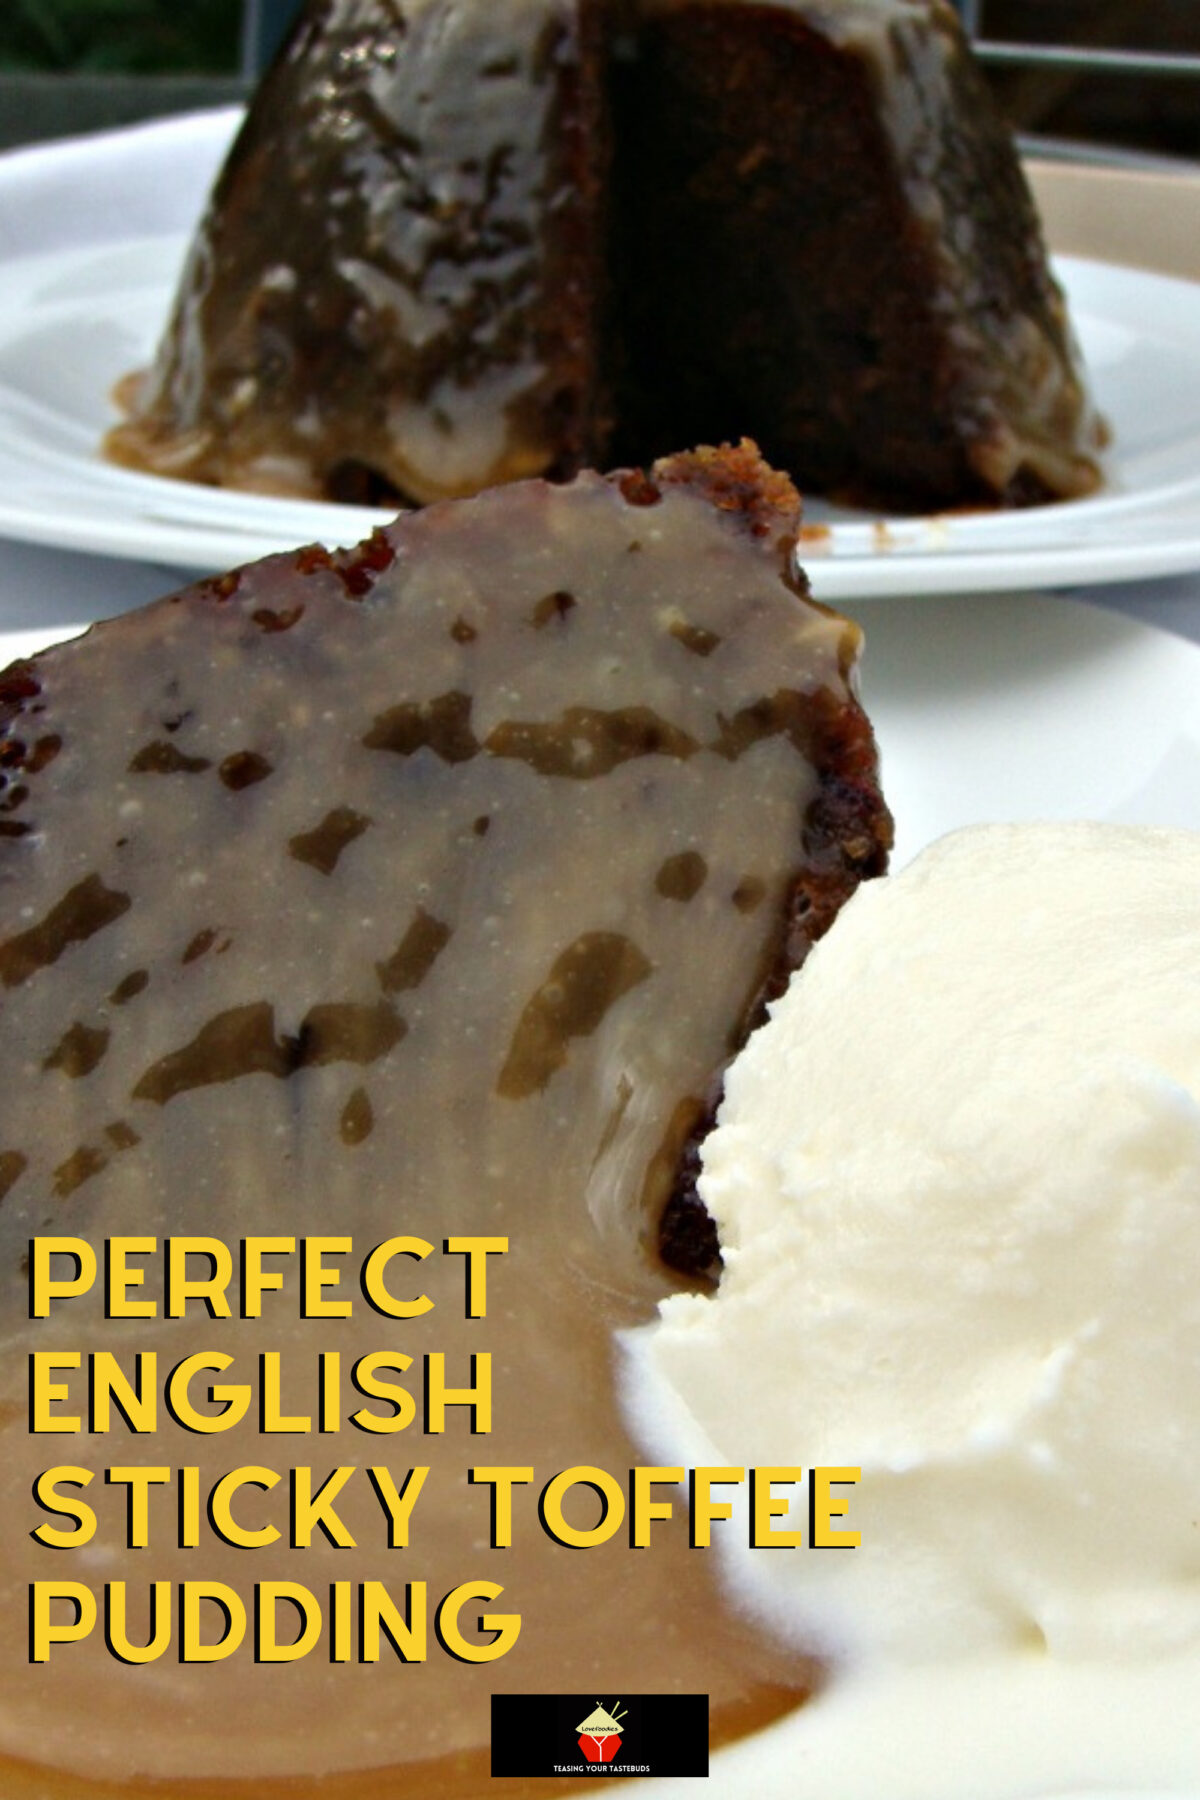 Perfect English Sticky Toffee Pudding. Heavenly! A delicious cake dessert served with a dreamy toffee sauce. It's a keeper!